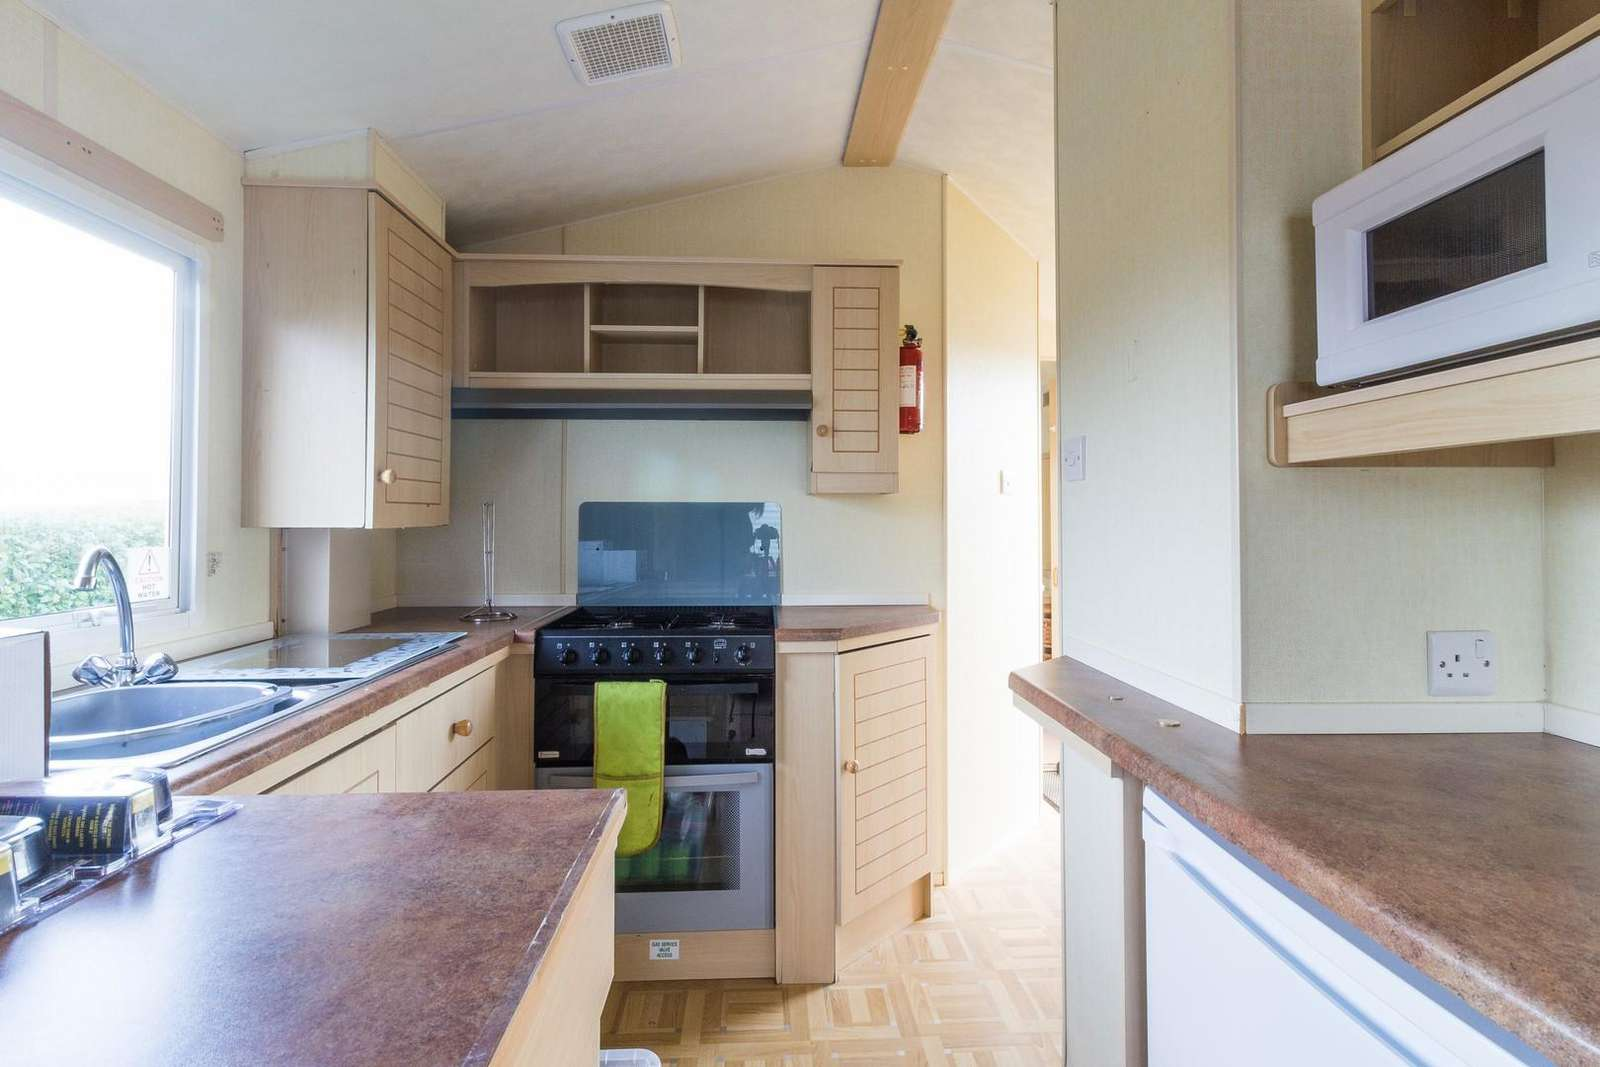 Static home for hire in Hunstanton, Norfolk